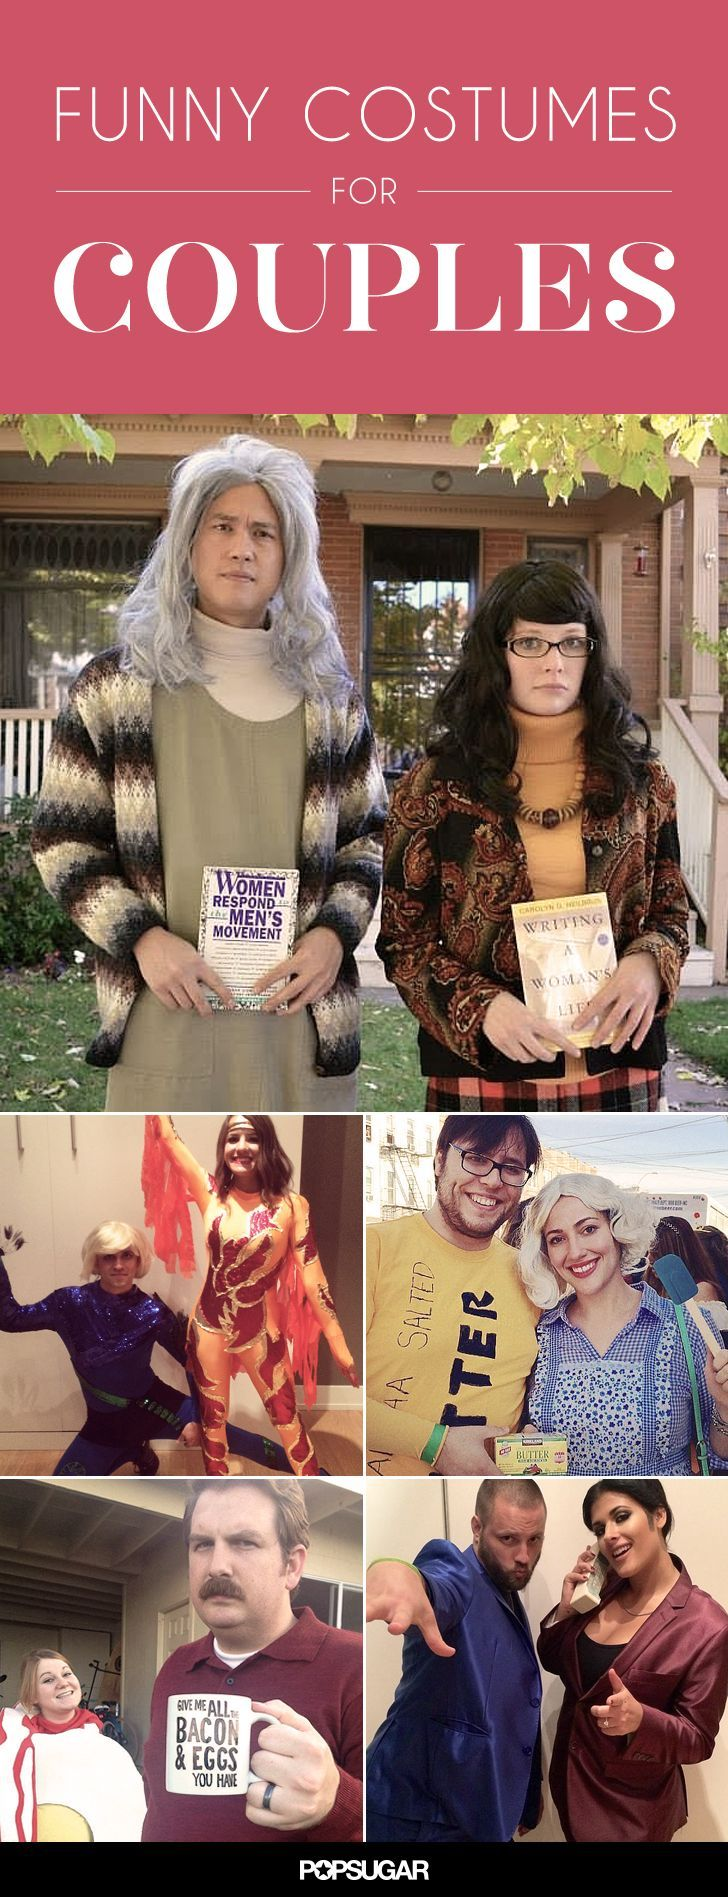 Whether youu0027re embodying Saturday Night Live characters or Will Ferrell movies these costume ideas will be a winner on Halloween night.  sc 1 st  Pinterest & 39 Hilarious Costumes For the Funniest Couples | Pinterest ...